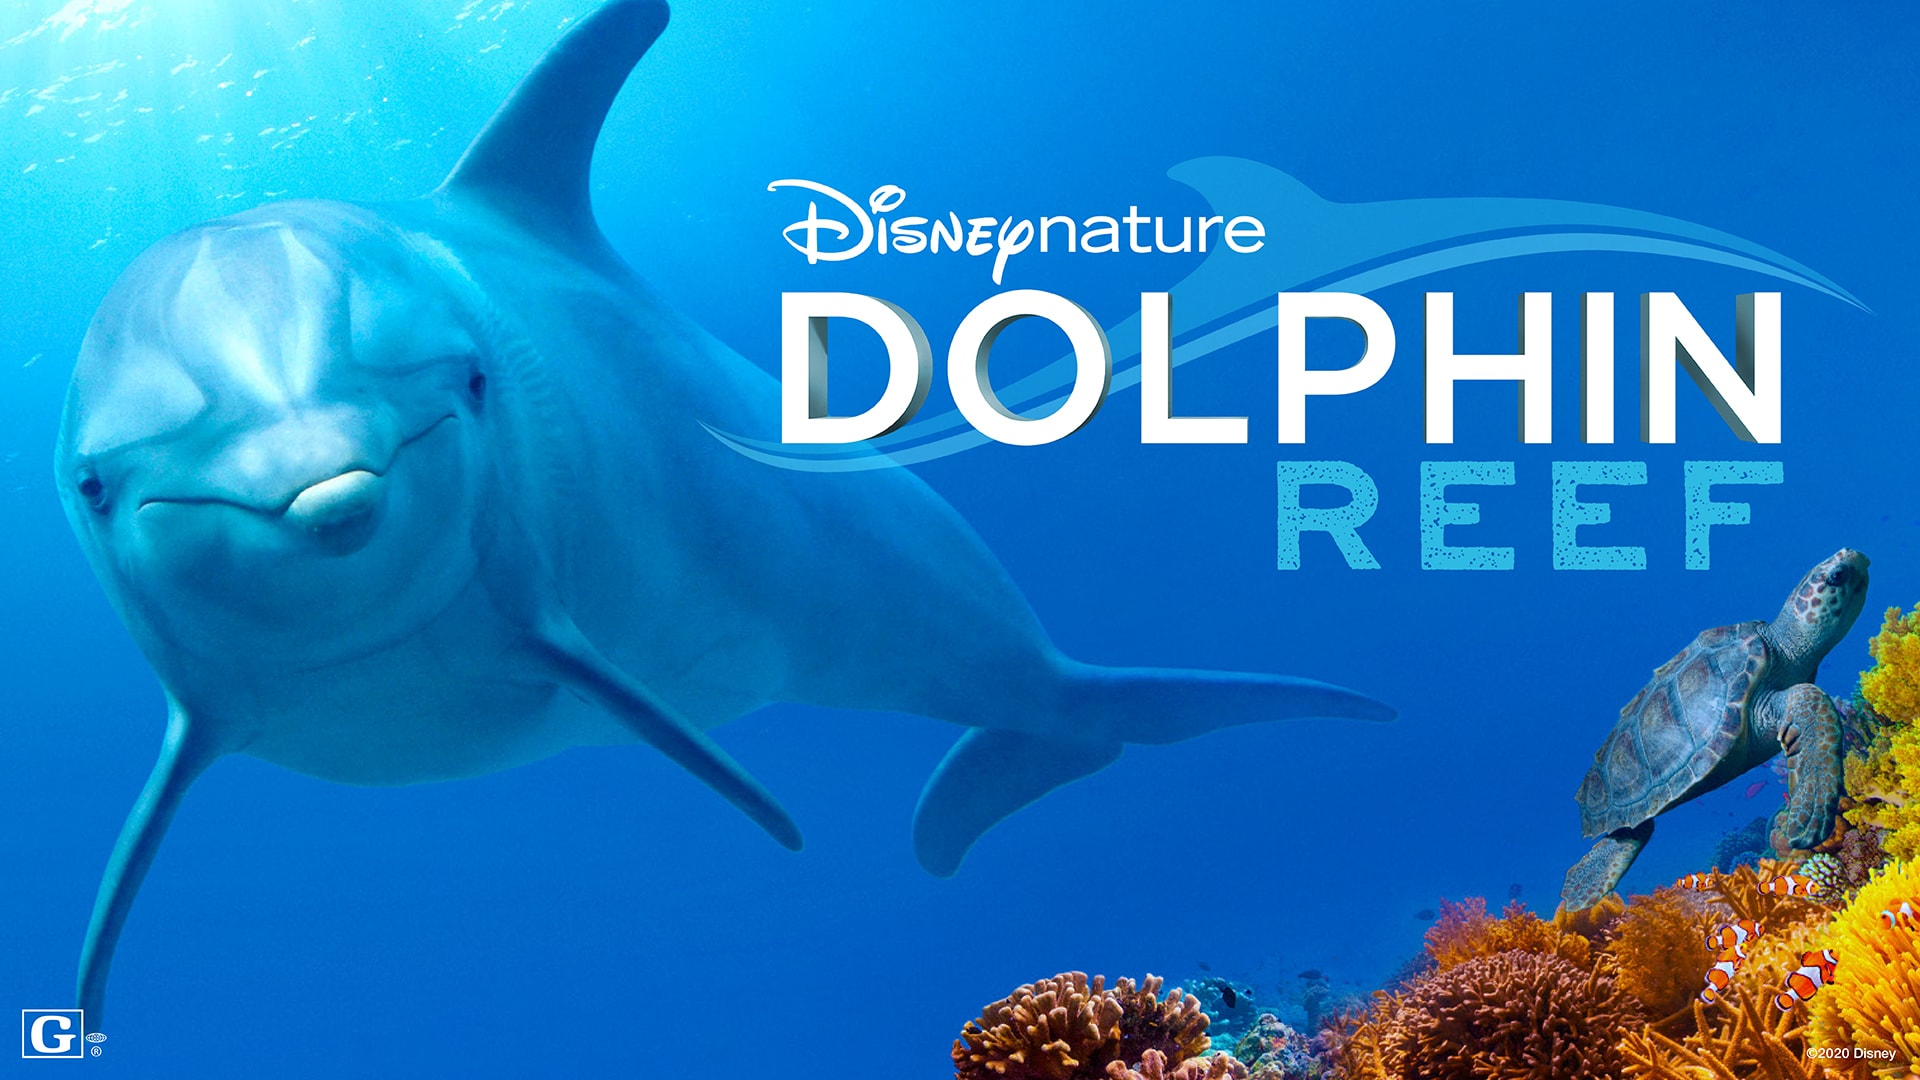 Earth Day Disney Plus Dolphin Reef